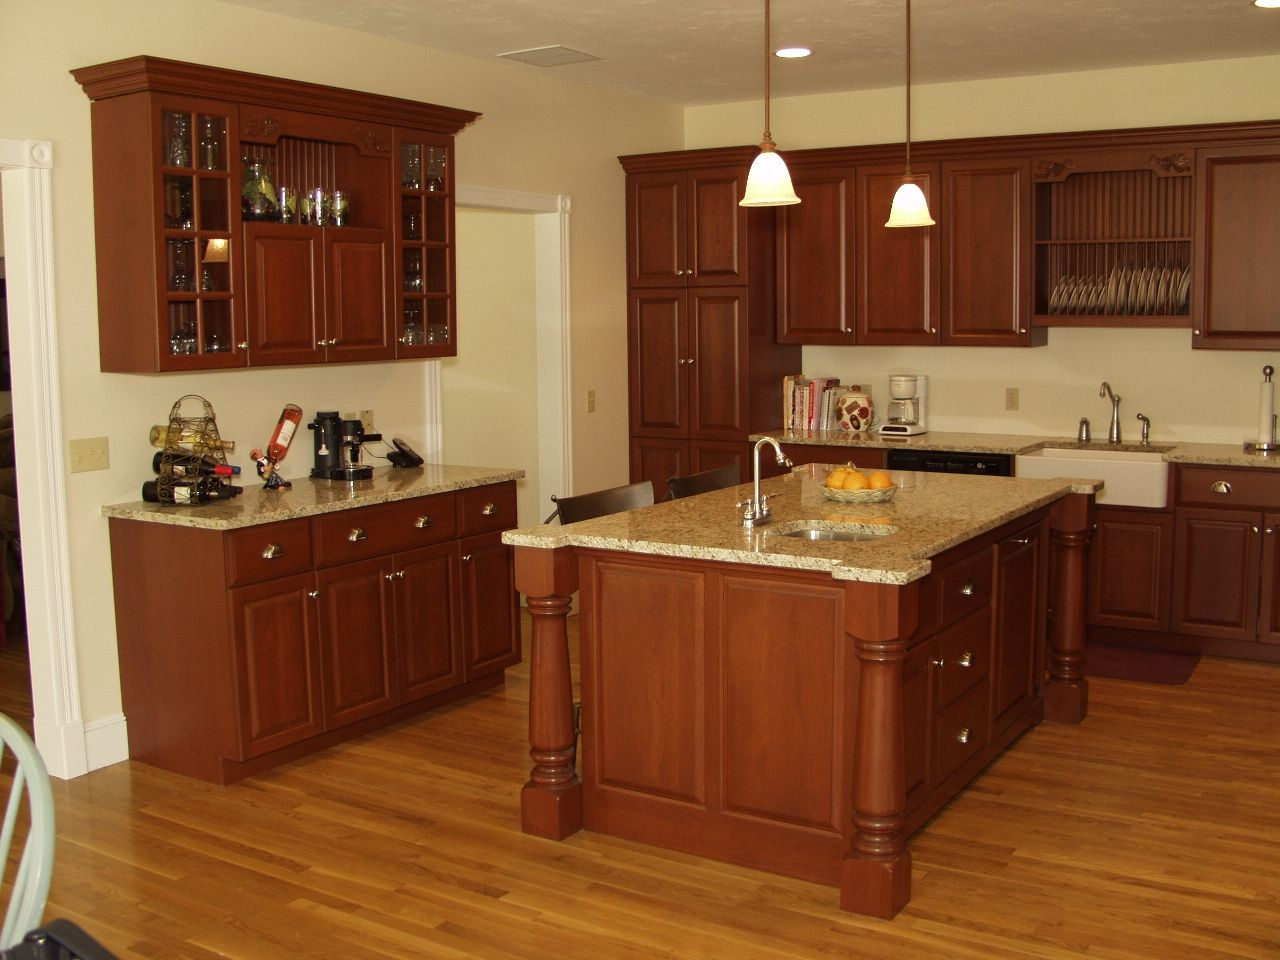 KitchenQuartz Countertops With Oak With